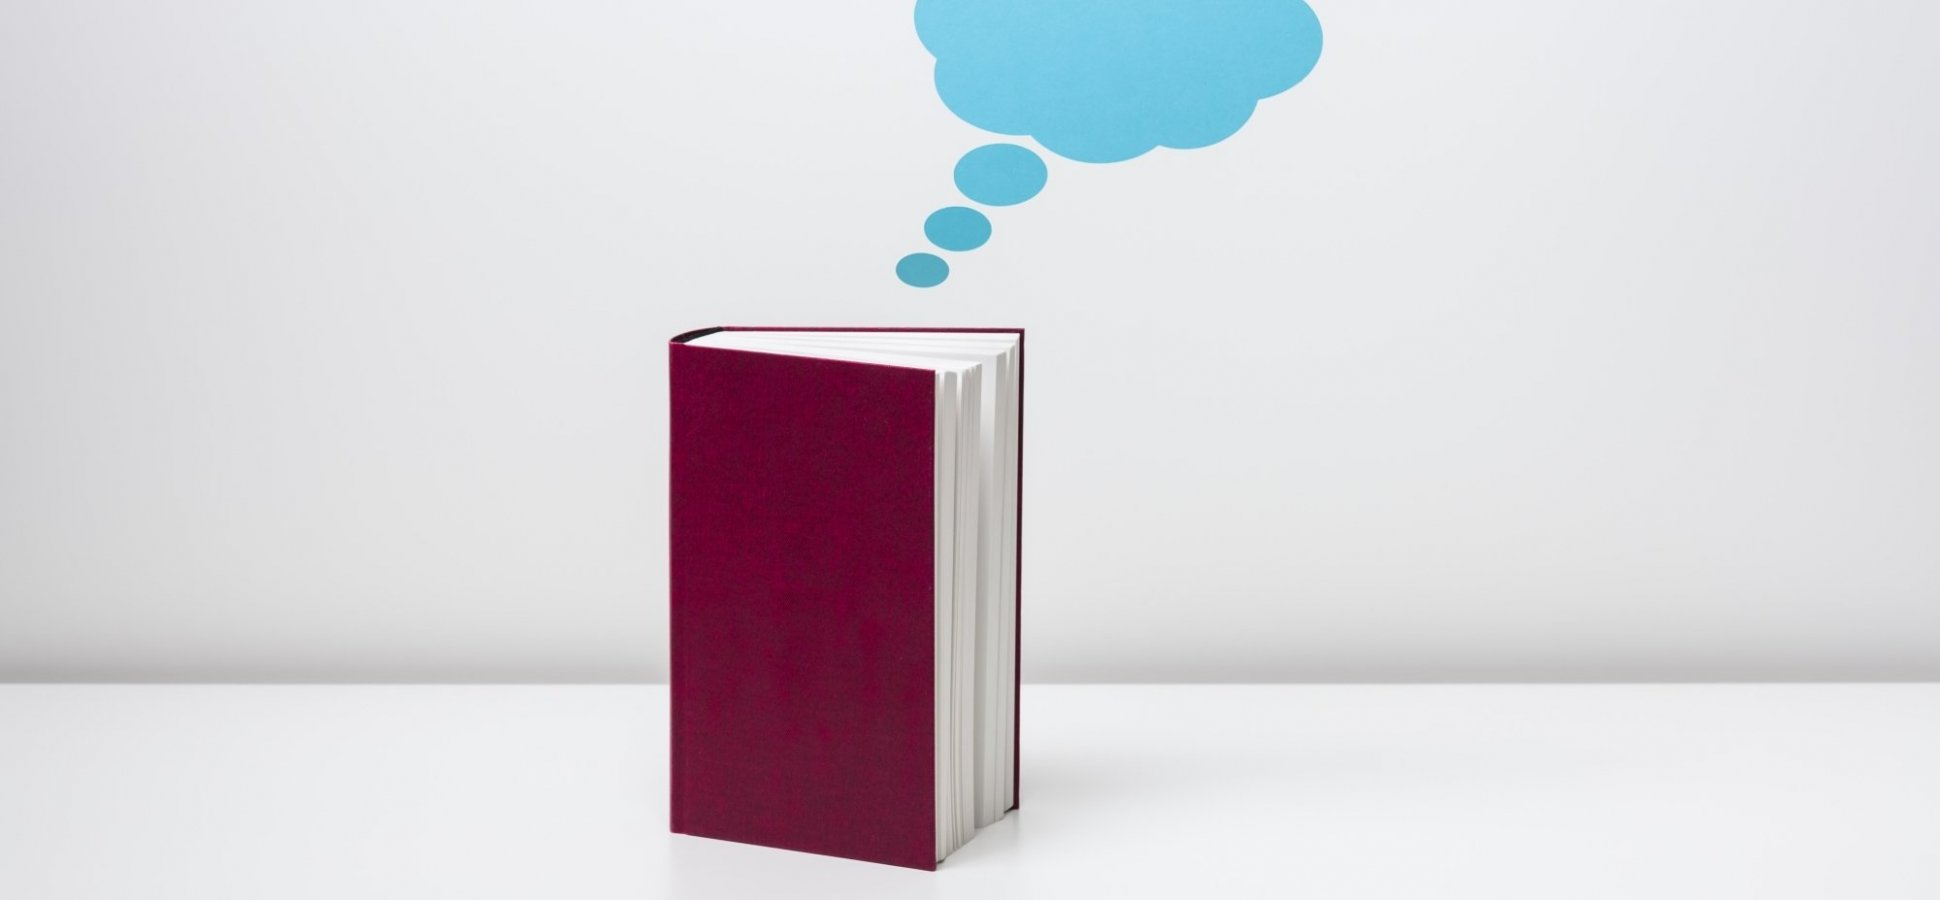 8 Must-Read Financial Books To Check Out This Summer